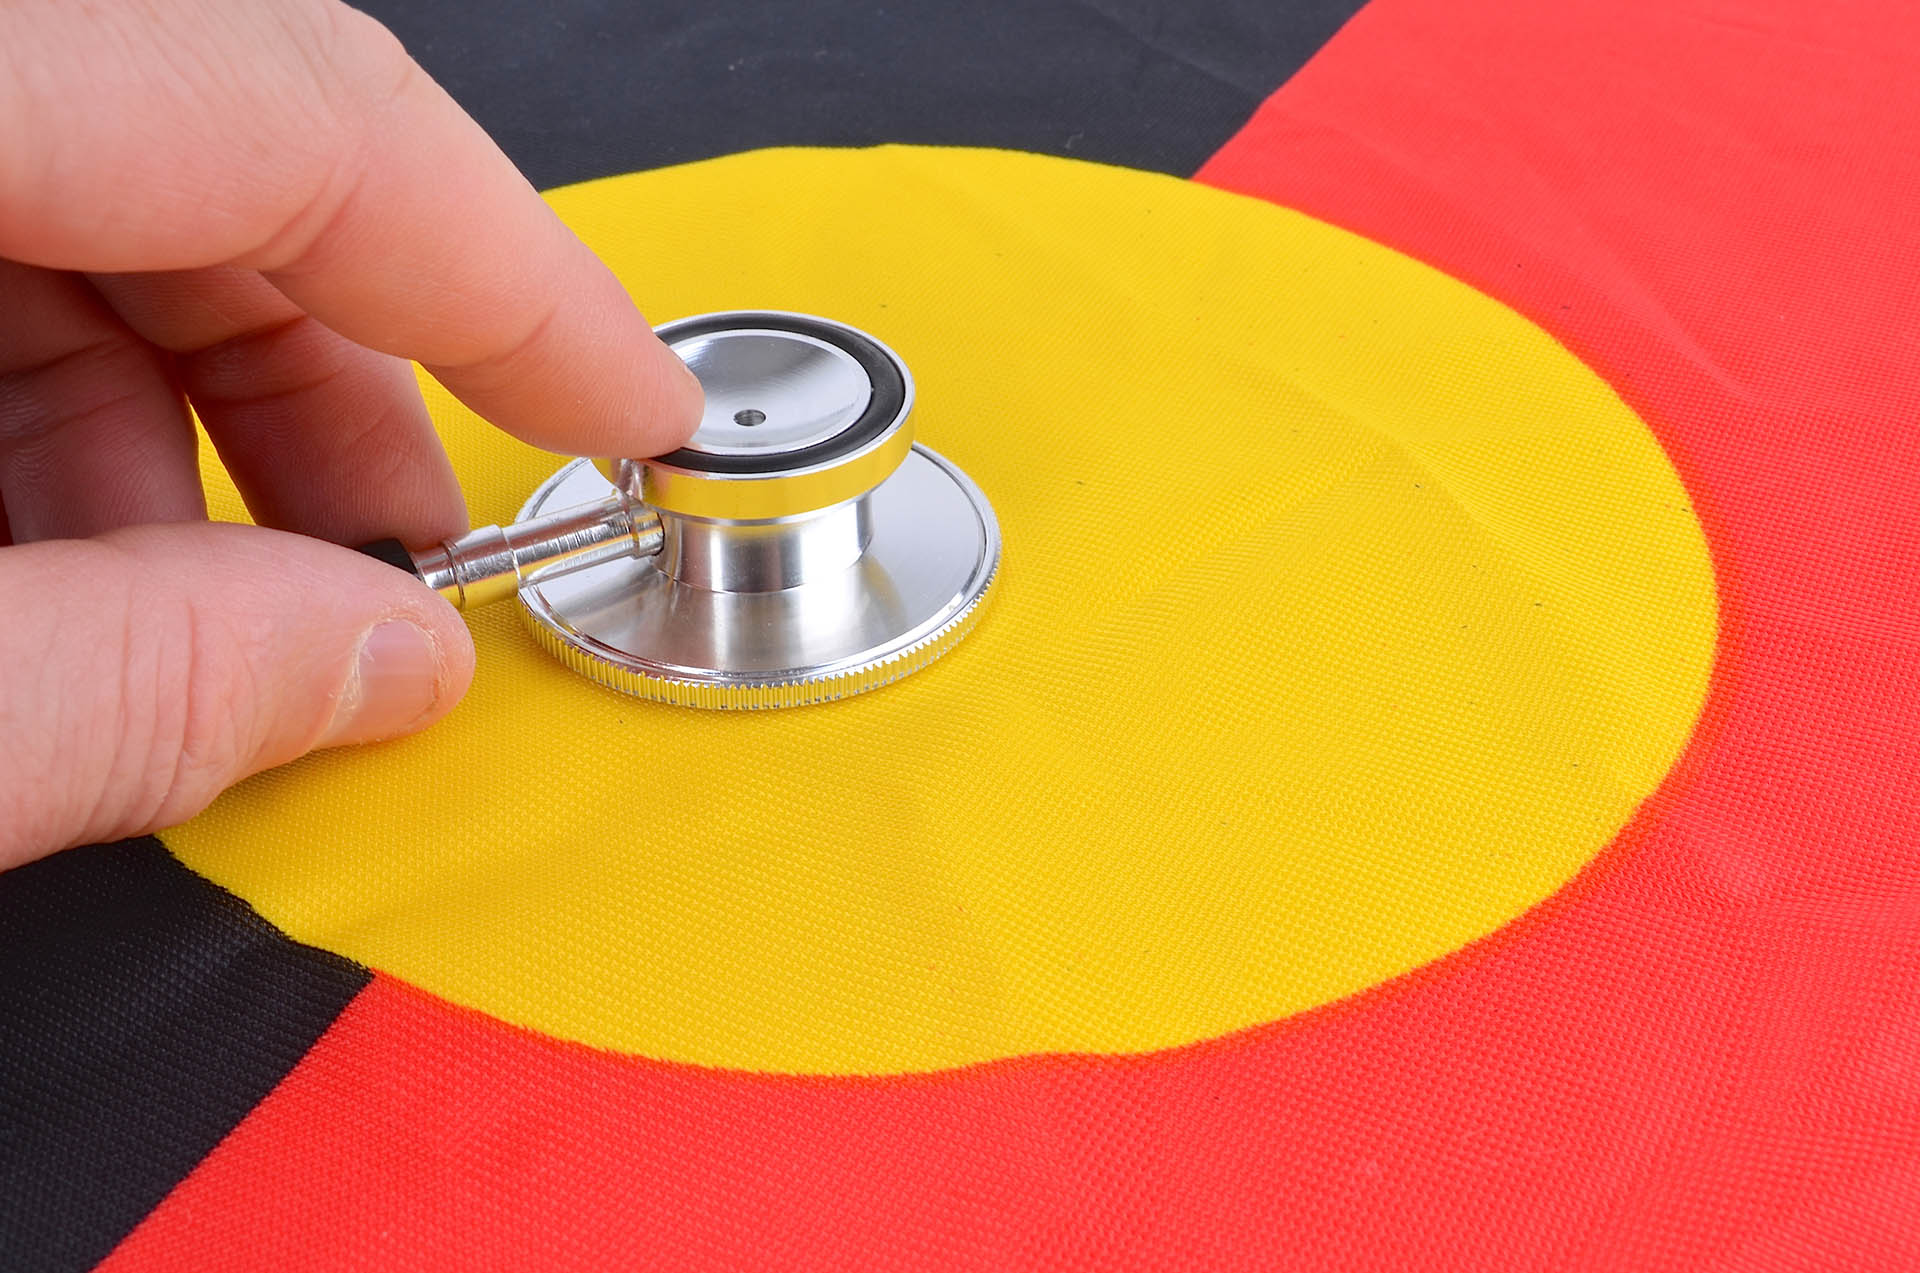 Stethoscope placed on Indigenous flag